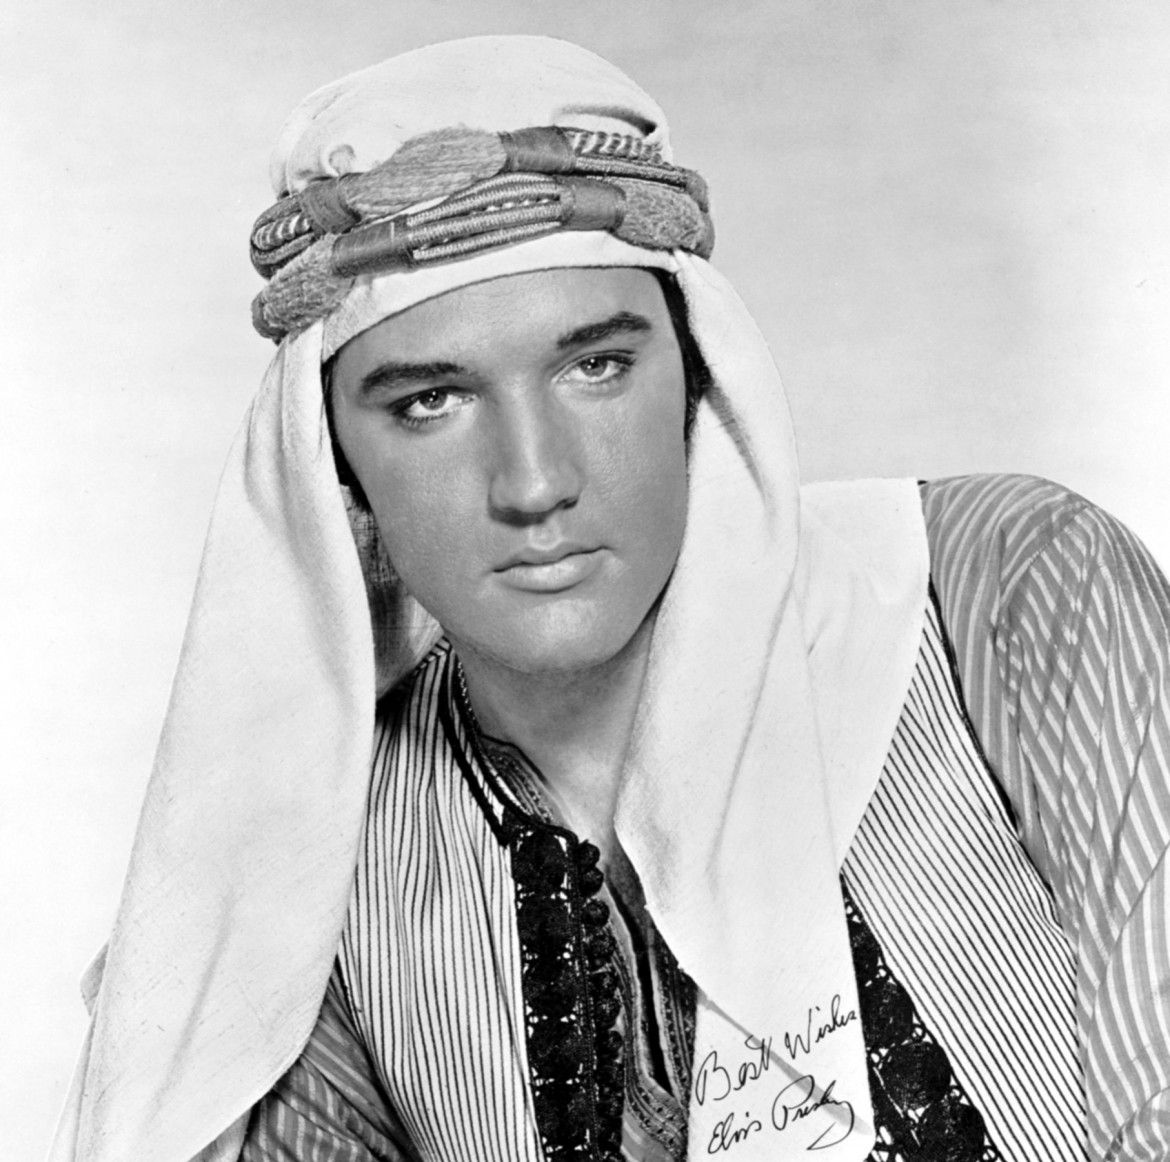 Wearing a keffiyeh, Elvis poses for a promotional image for the 1965 film Harum Scarum.